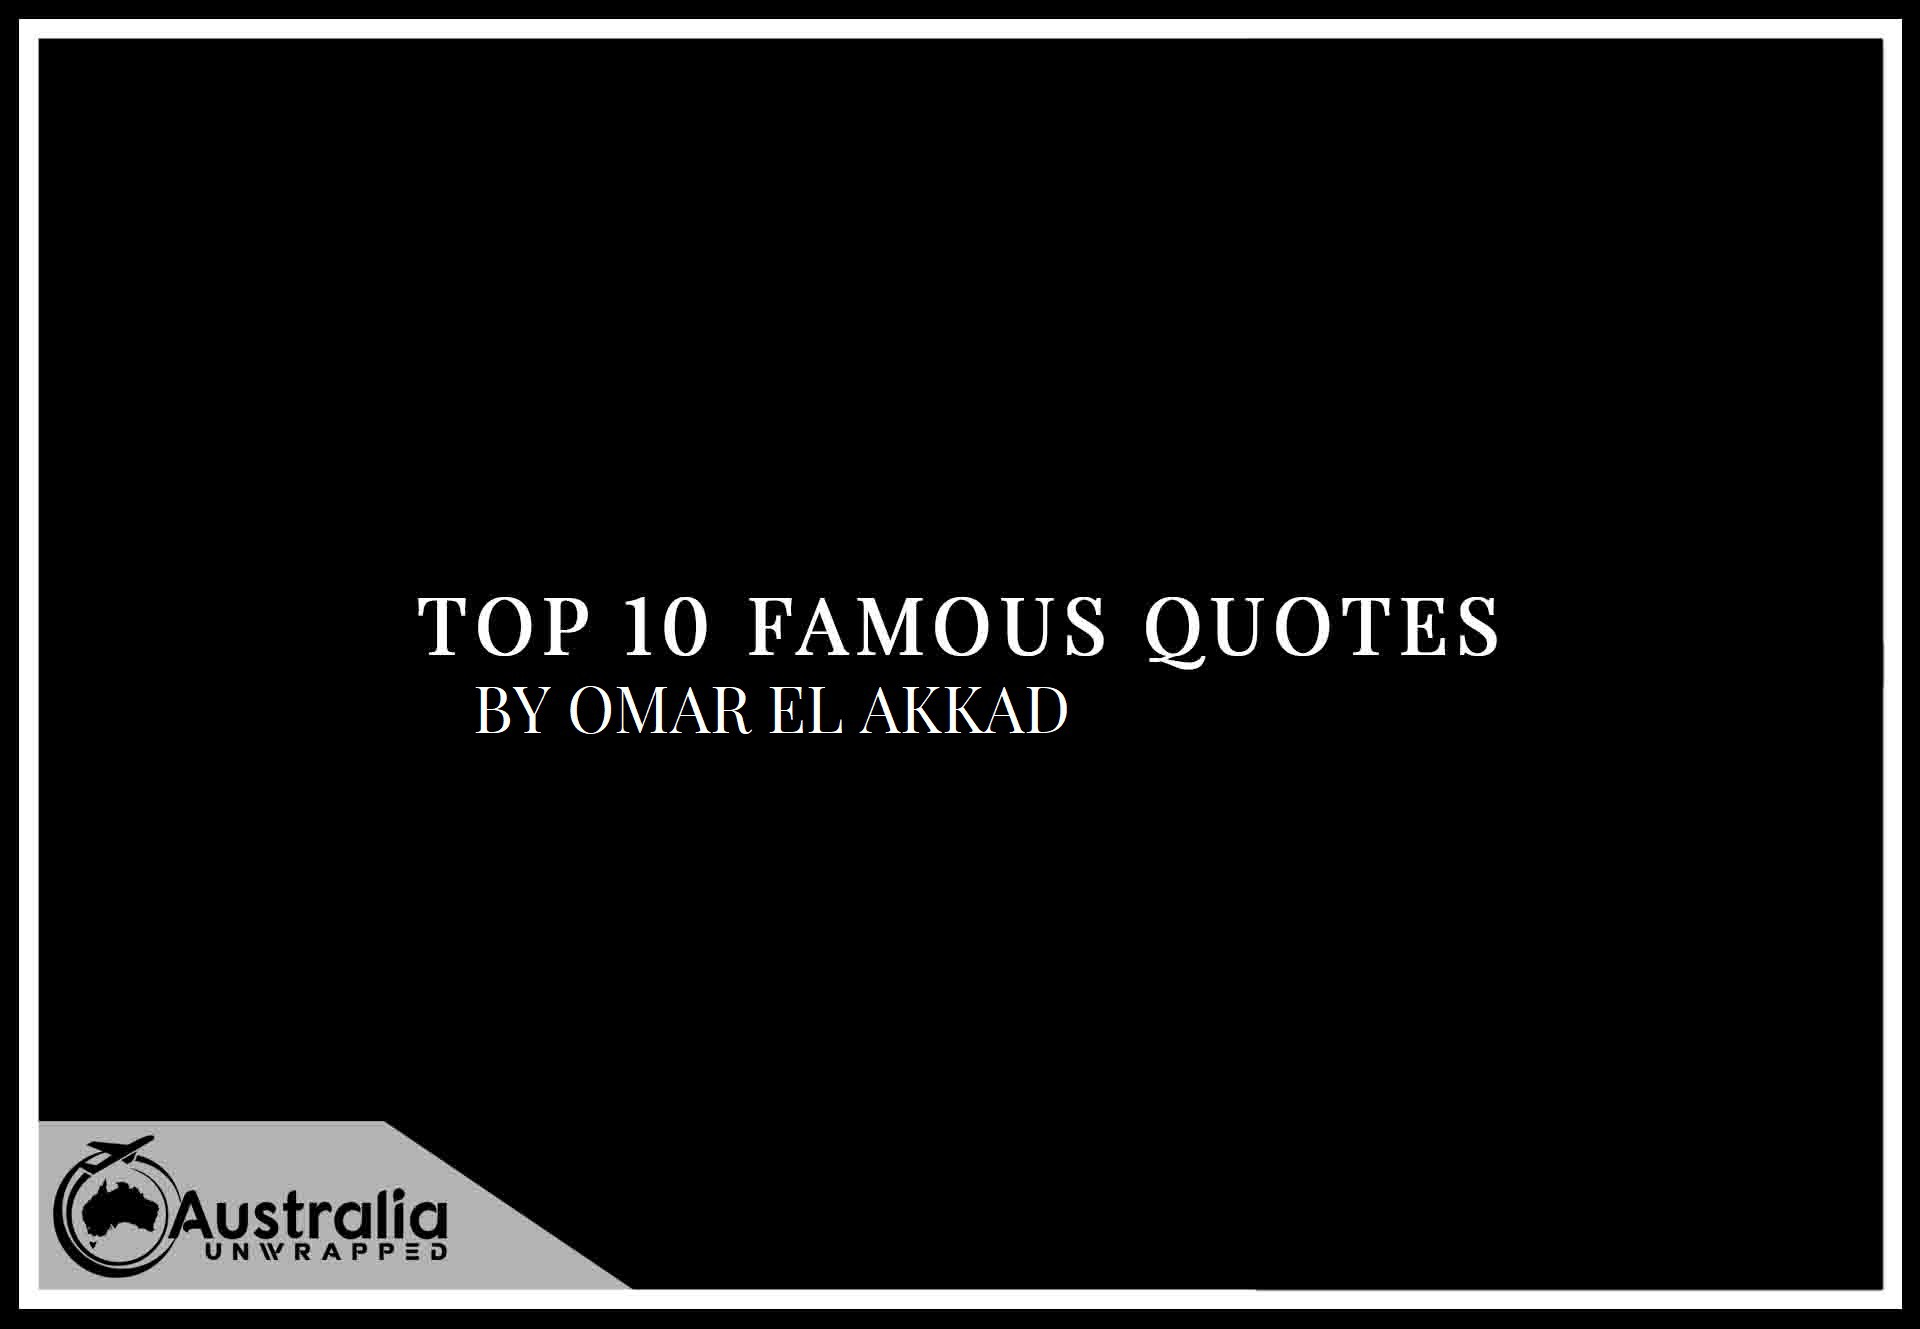 Top 10 Famous Quotes by Author Omar El Akkad